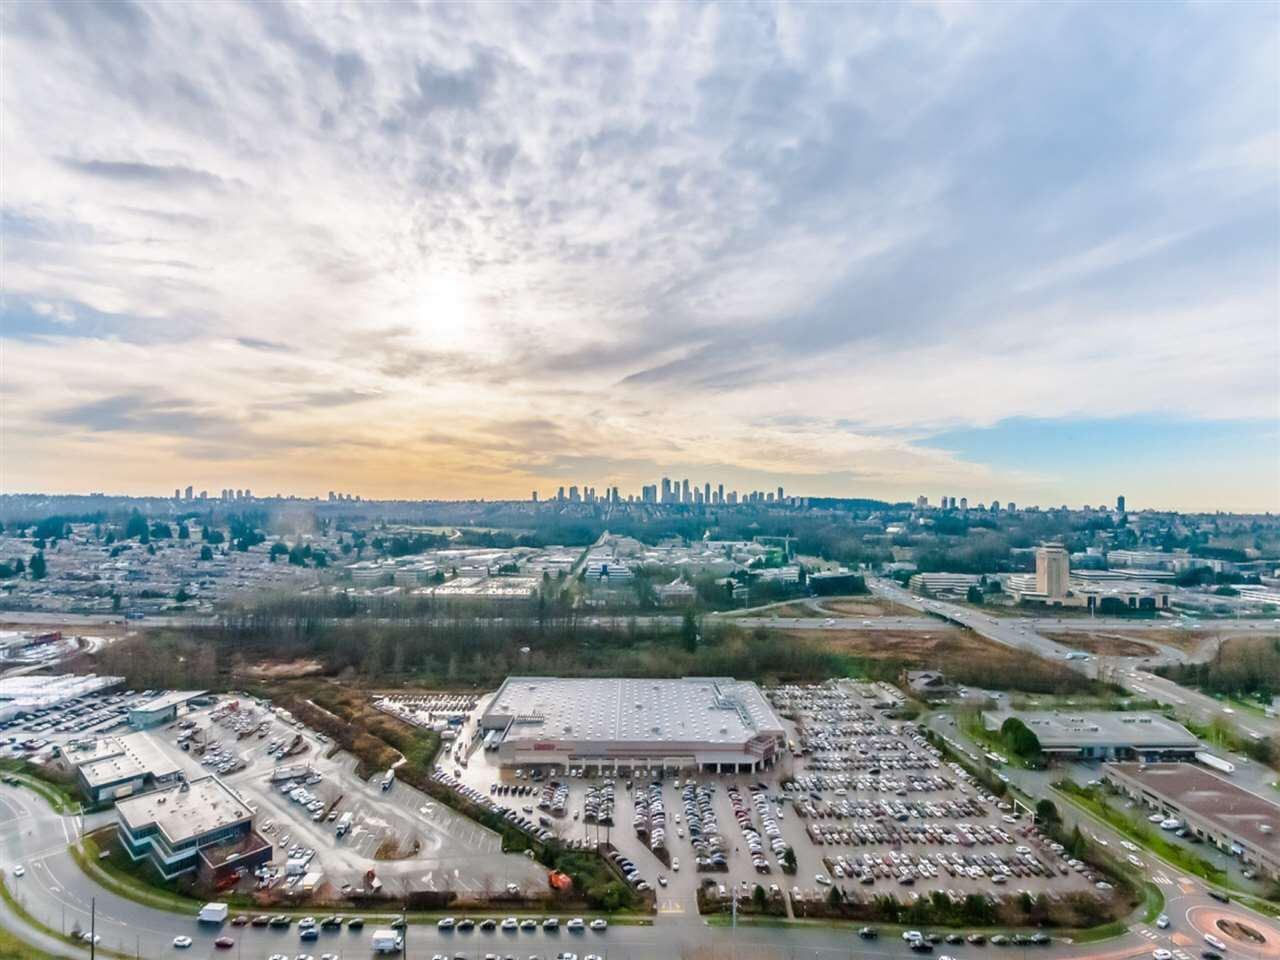 """Main Photo: 3501 2311 BETA Avenue in Burnaby: Brentwood Park Condo for sale in """"LUMINA WATERFALL"""" (Burnaby North)  : MLS®# R2524920"""